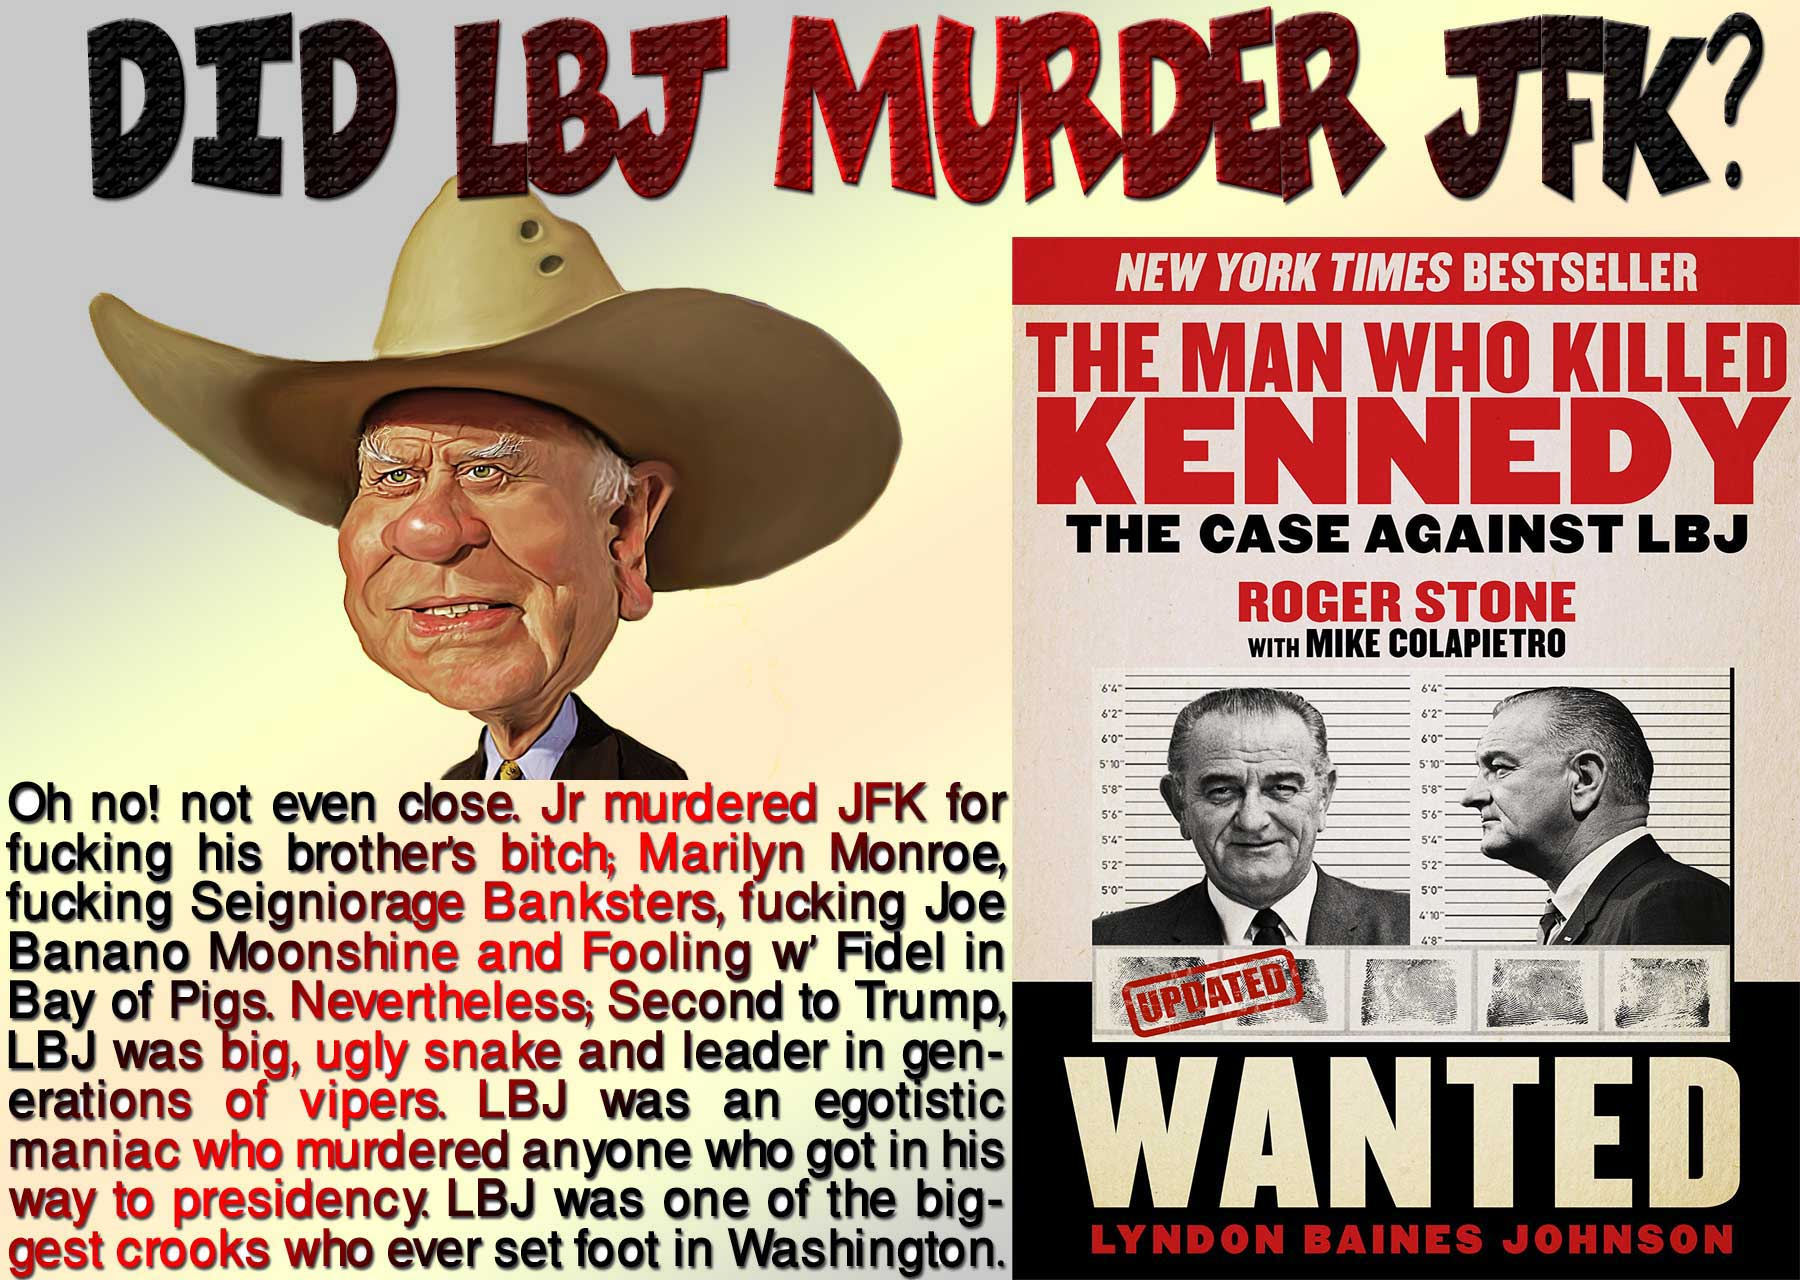 📢 Did LBJ Murder JFK? Oh no! not even close. Jr murdered JFK for fucking his brother's bitch; Marilyn Monroe, fucking Seigniorage Banksters, fucking Joe Banano Moonshine and Fooling w' Fidel in Bay of Pigs. Nevertheless; Second to Trump, LBJ was big, ugly snake and leader in generations of vipers. LBJ was an egotistic maniac who murdered anyone who got in his way to presidency. LBJ was one of the biggest crooks who ever set foot in Washington. 📢